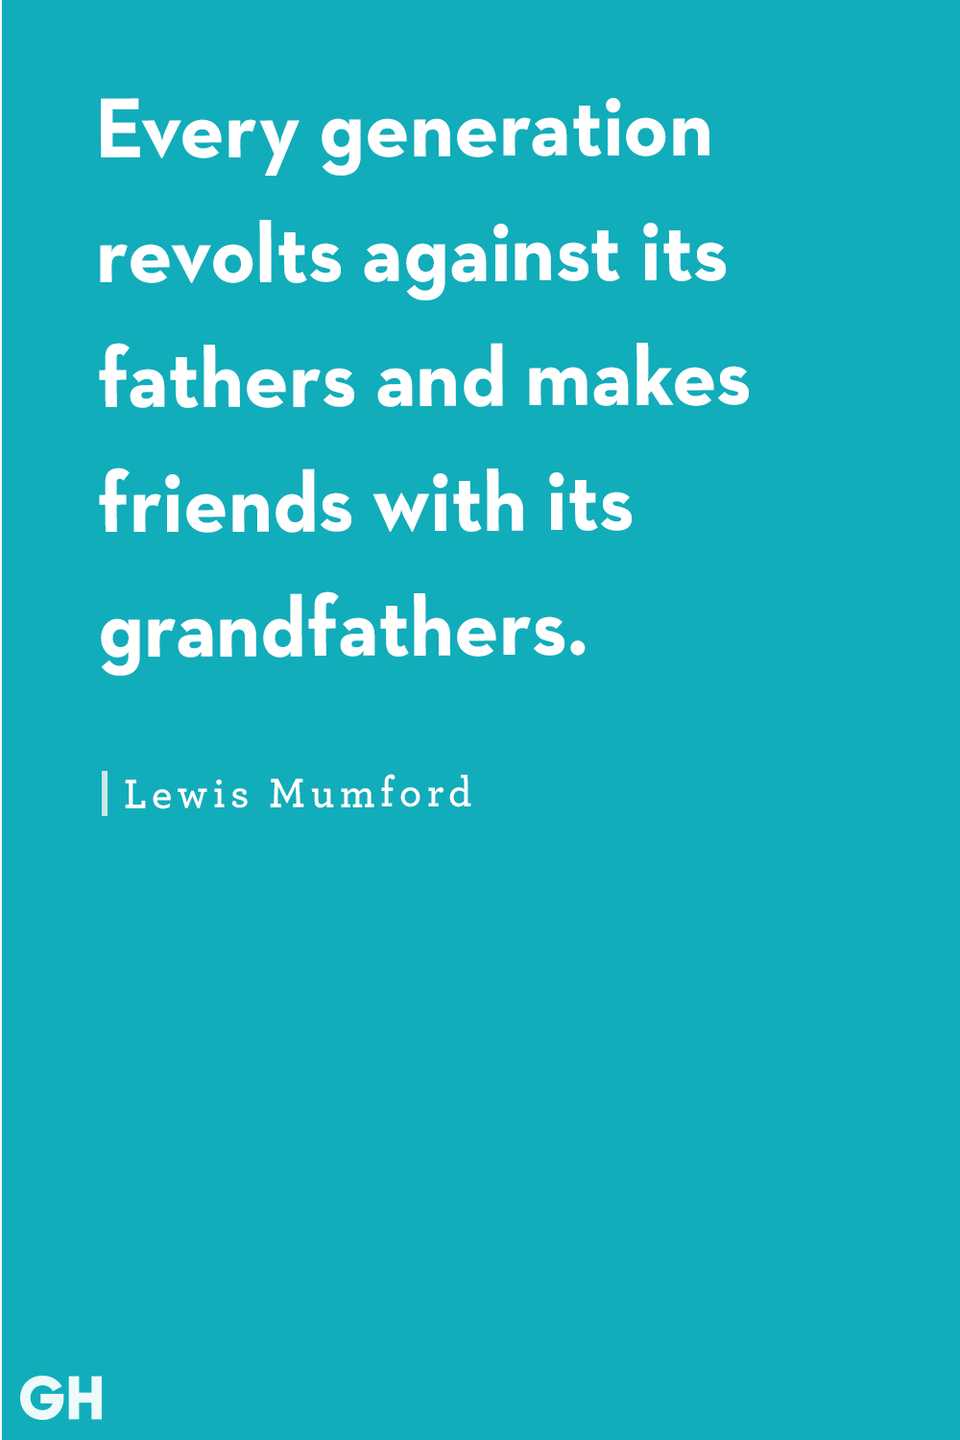 <p>Every generation revolts against its fathers and makes friends with its grandfathers.</p>